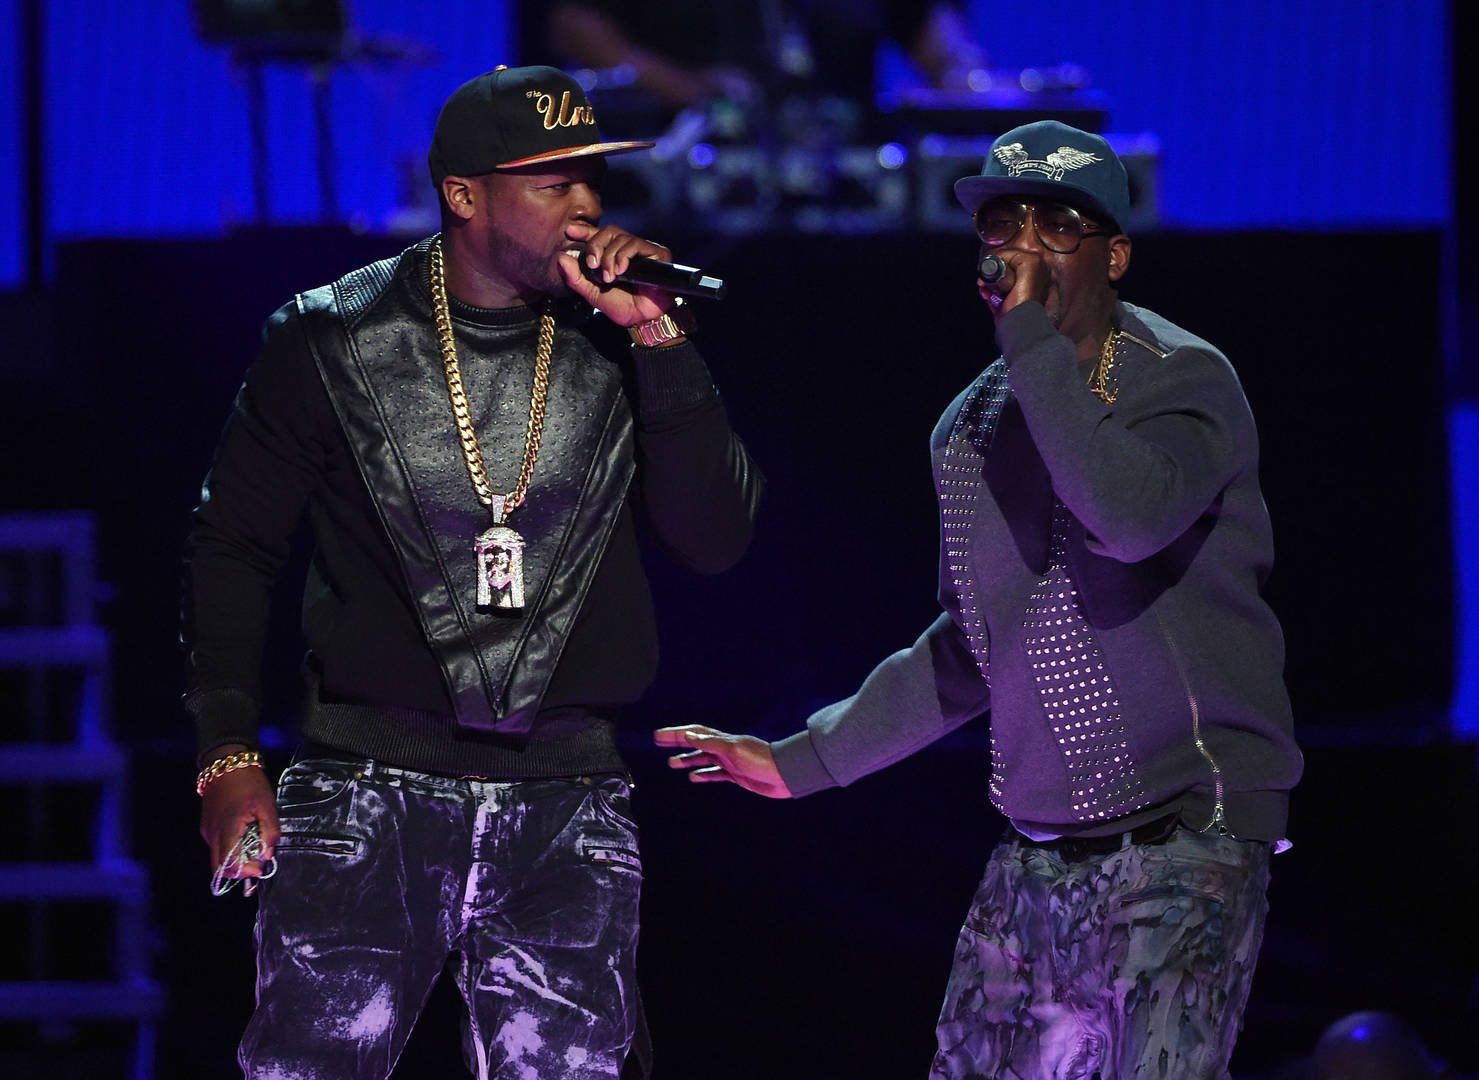 50 Cent Trolls Tony Yayo Over Swagger-Jacking A Fisherman's Hat